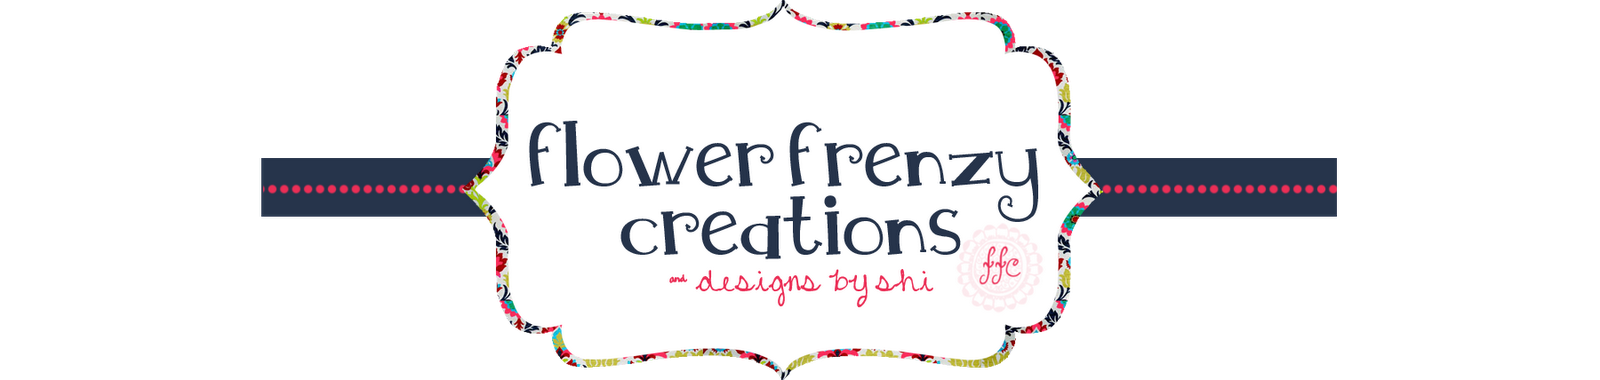 Flower Frenzy Creations